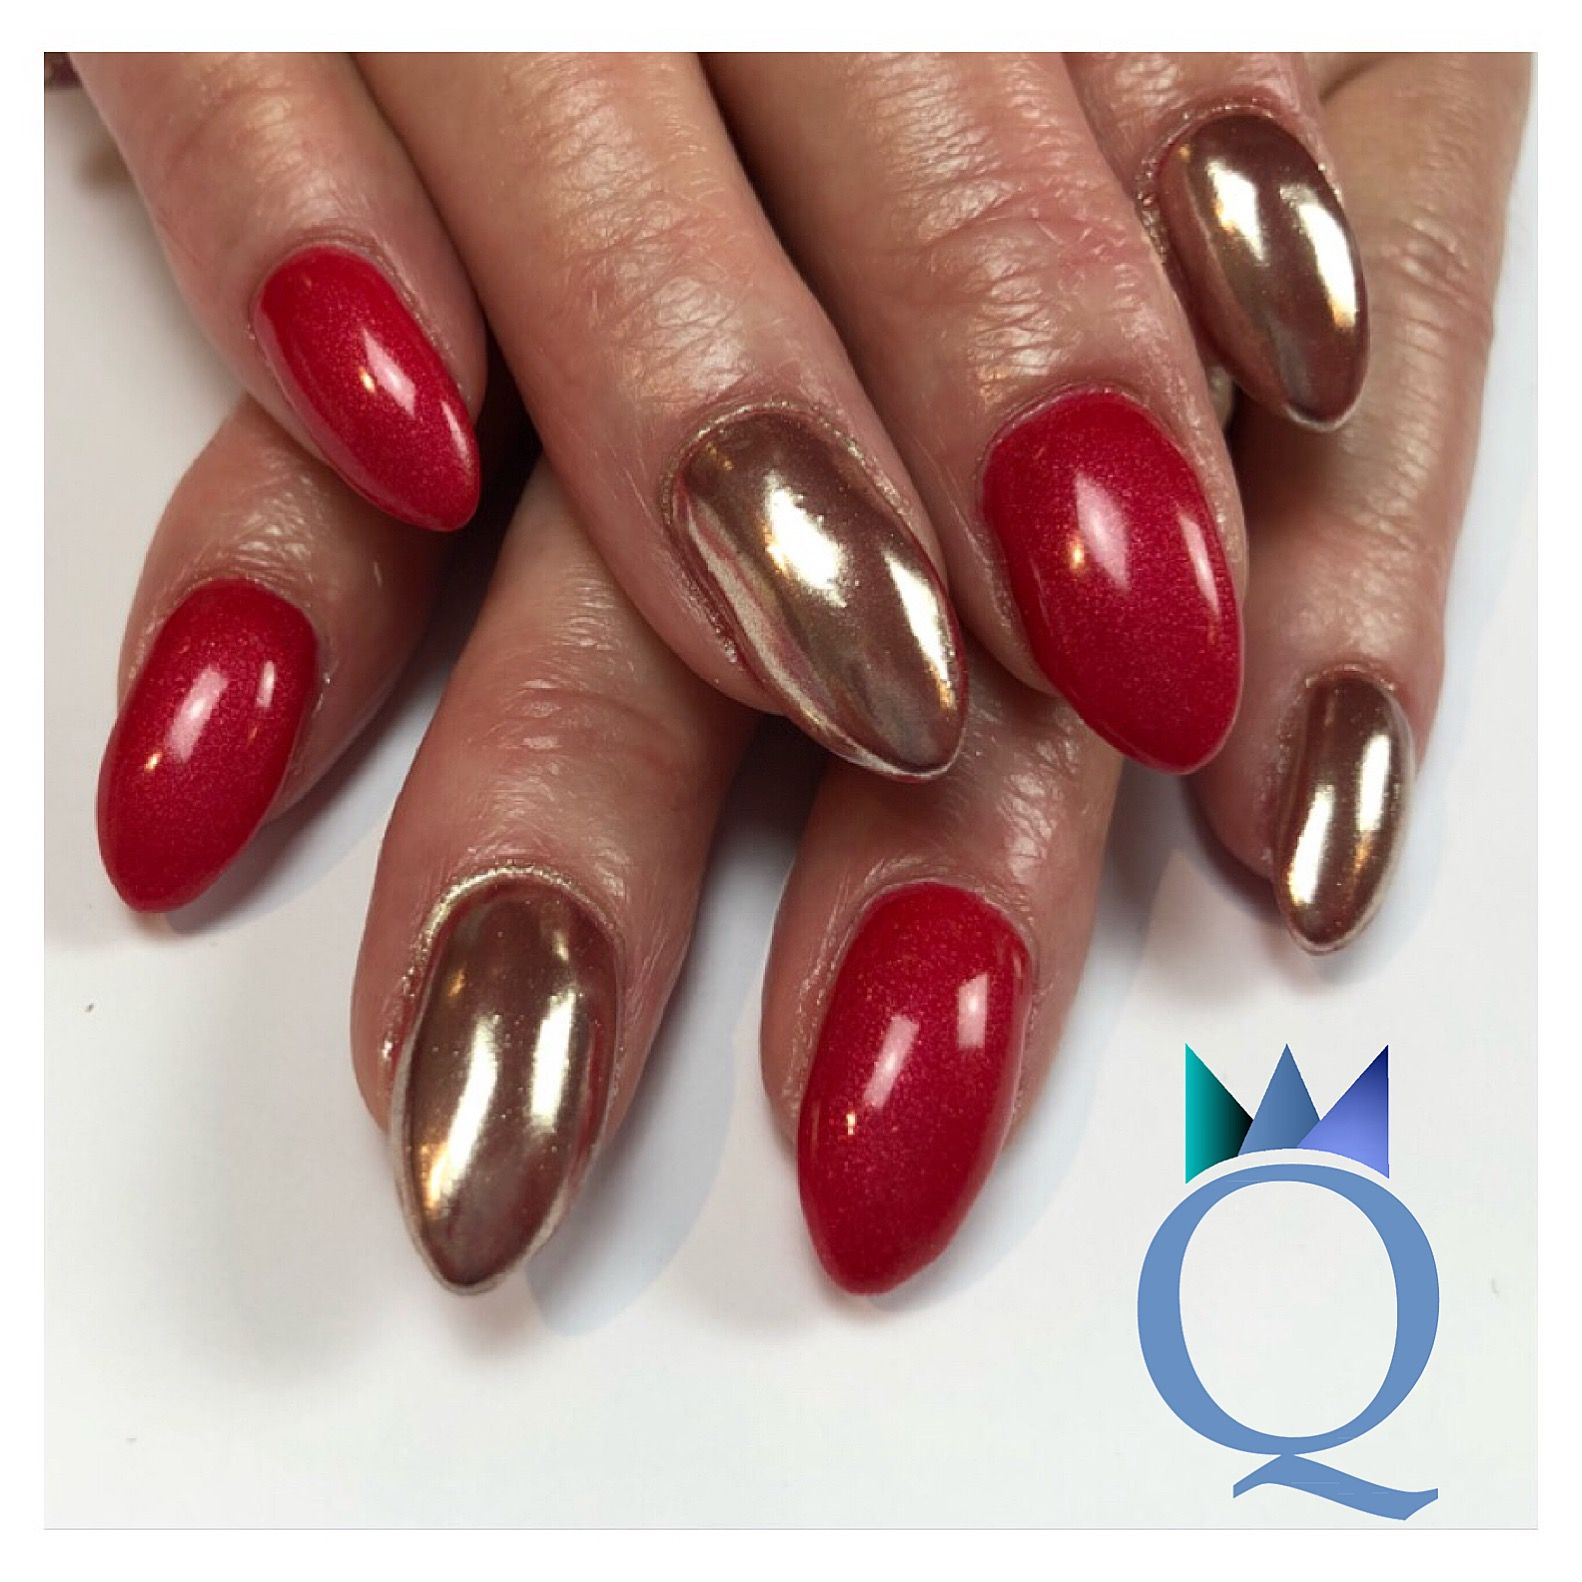 almondnails #gelnails #nails #red #chrome #mandelform #gelnägel ...